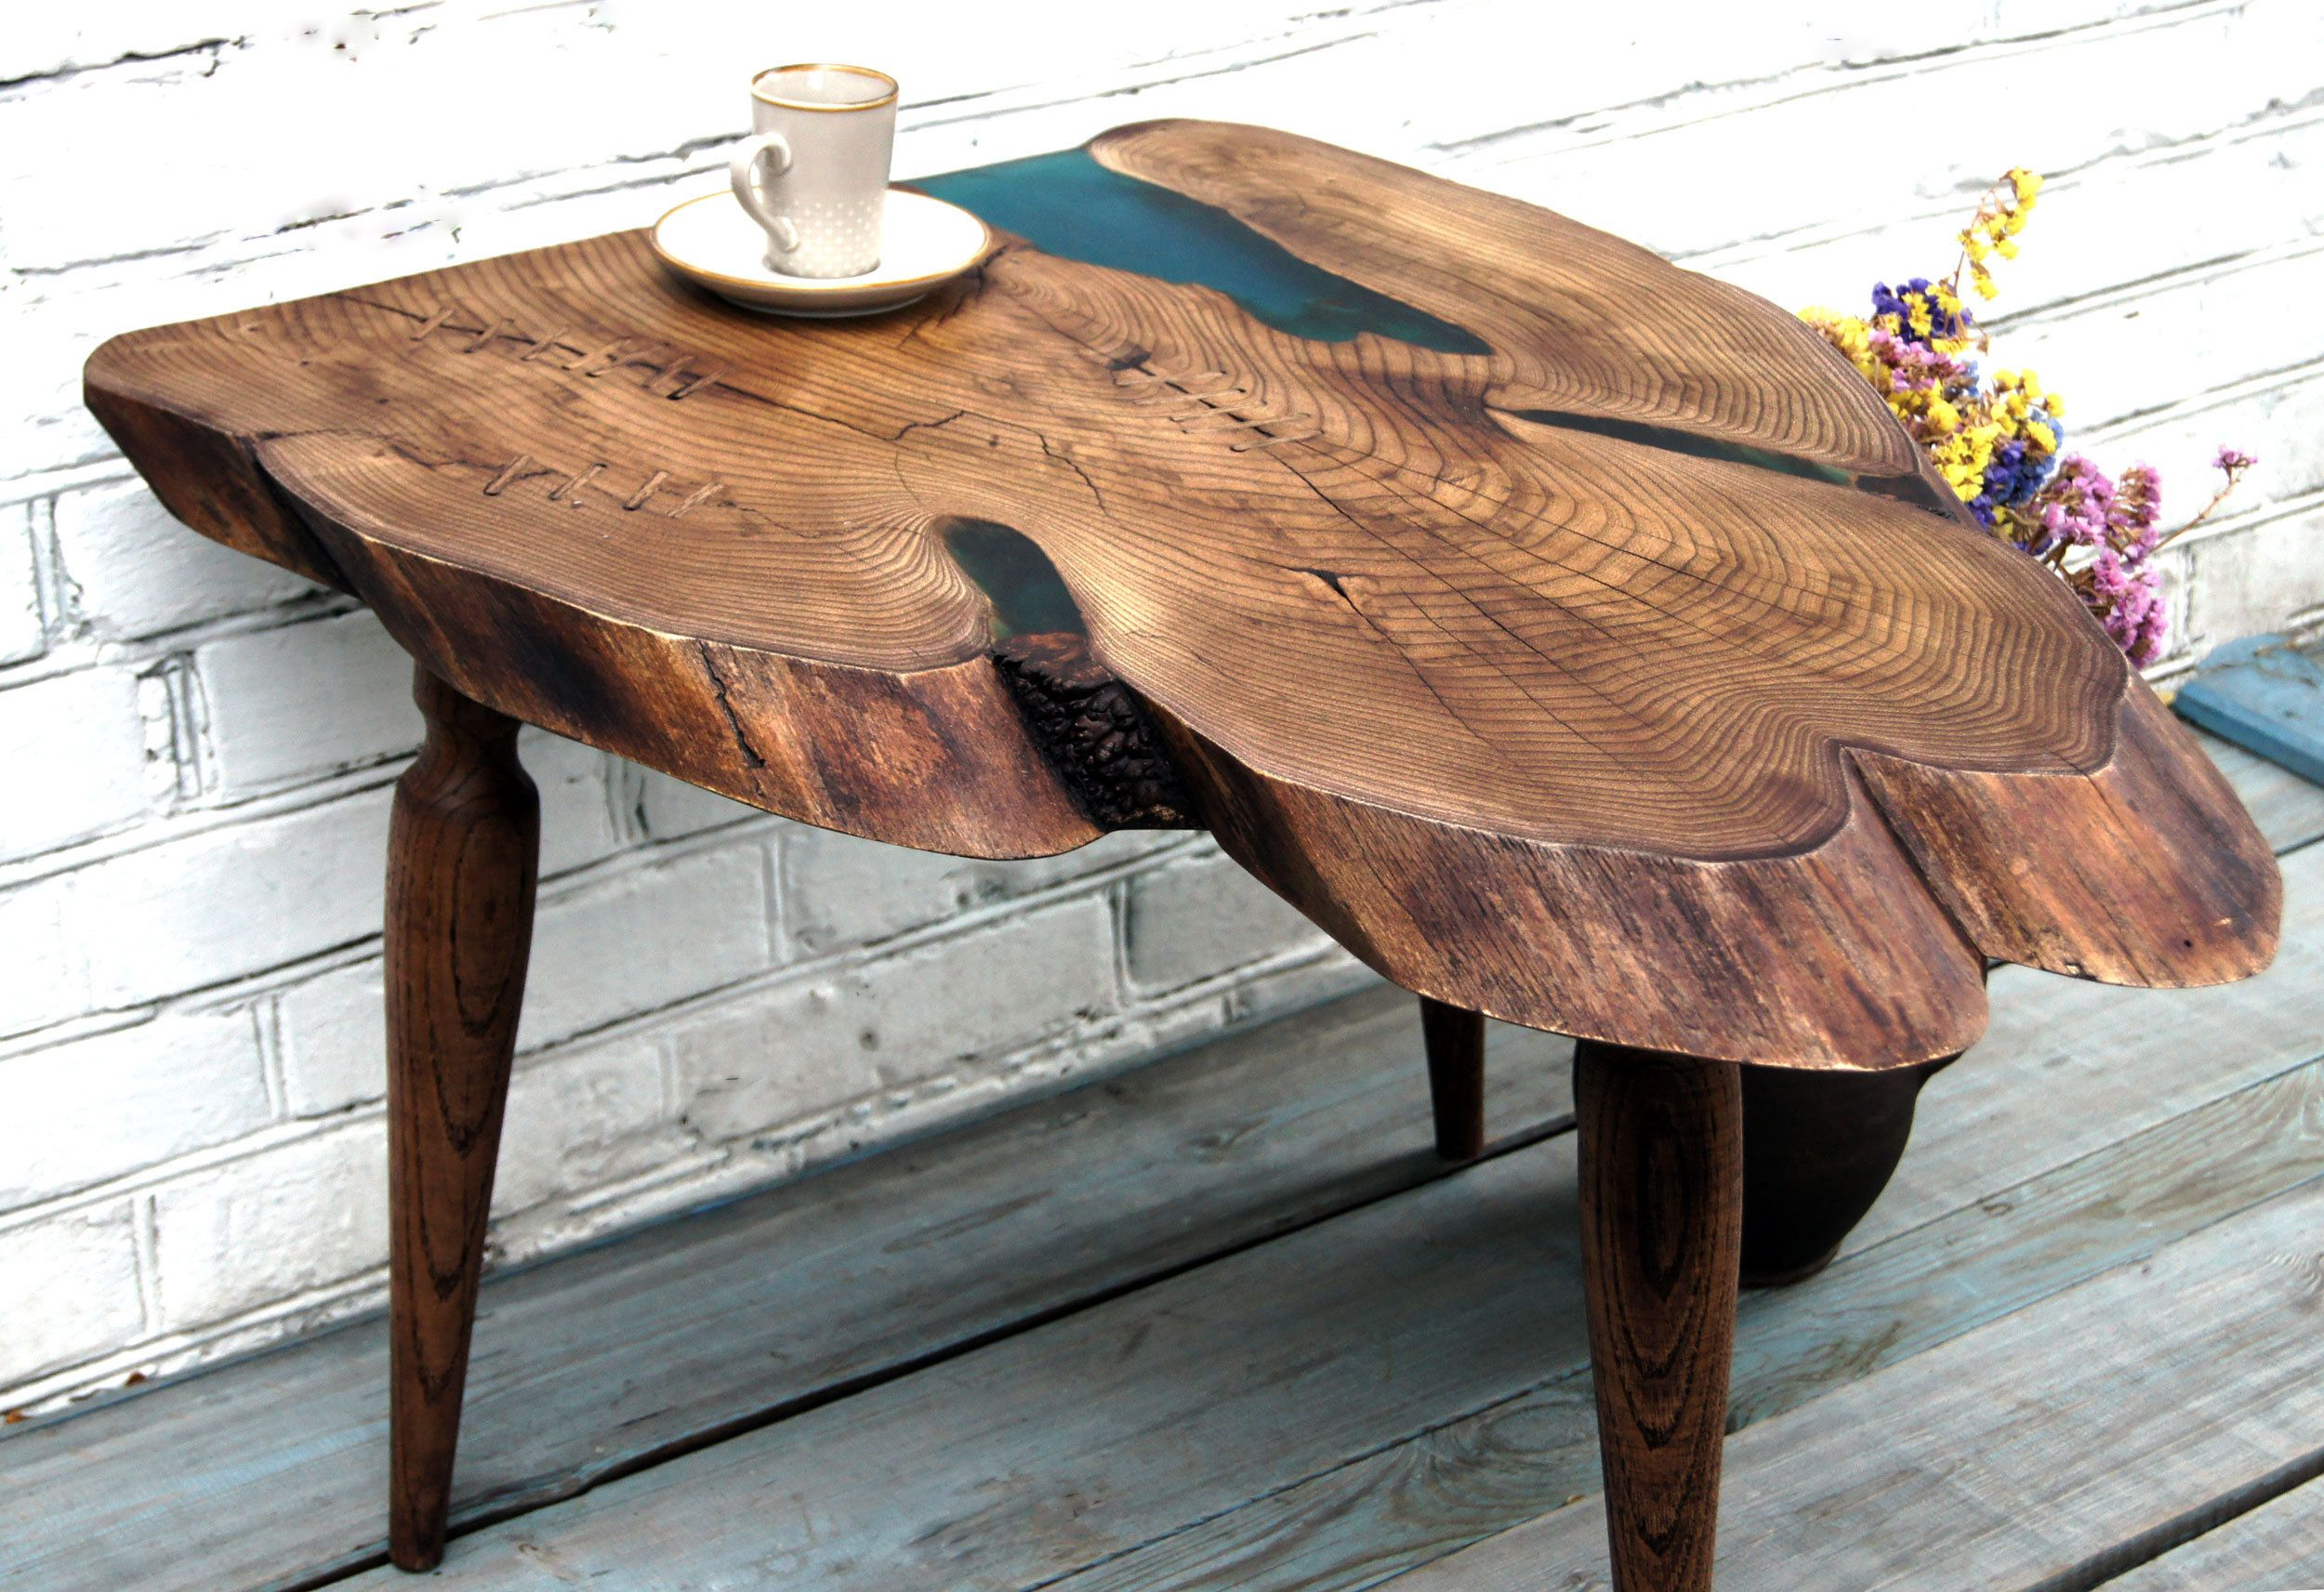 Pin By Frank Verhaelen On Tische Live Edge Wood Wood Table Wood Table Design